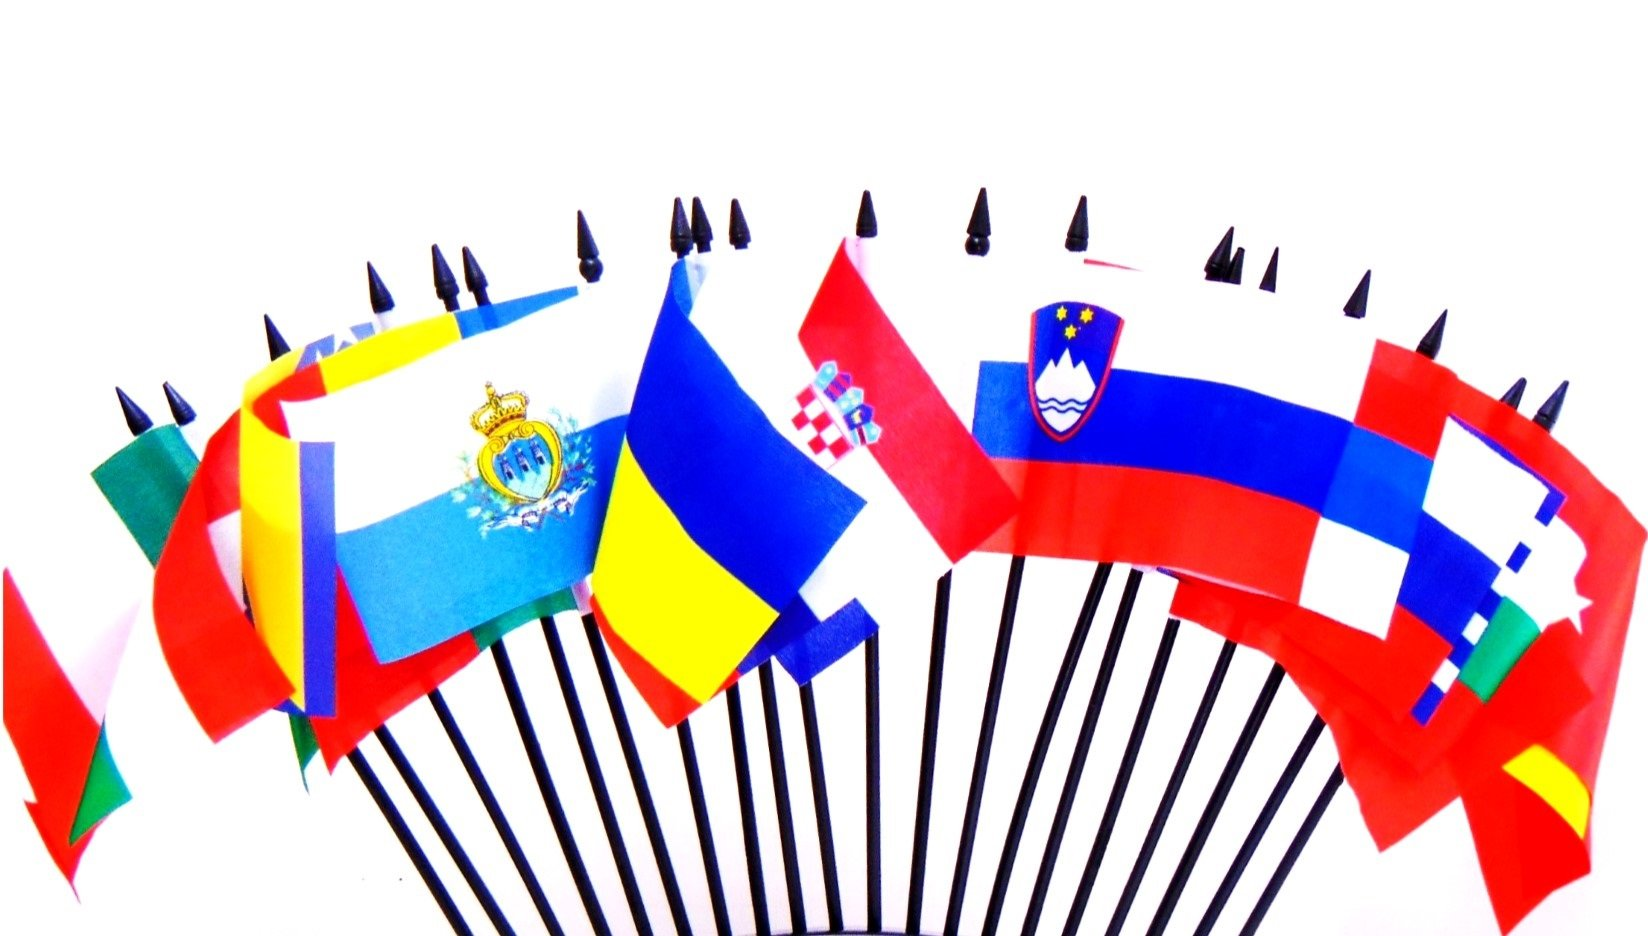 """Southeast Europe World Flag SET-20 Polyester 4""""x6"""" Flags, One Flag for Each Country in Southeast Europe 4x6 Miniature Desk & Table Flags, Small Mini Stick Flags"""